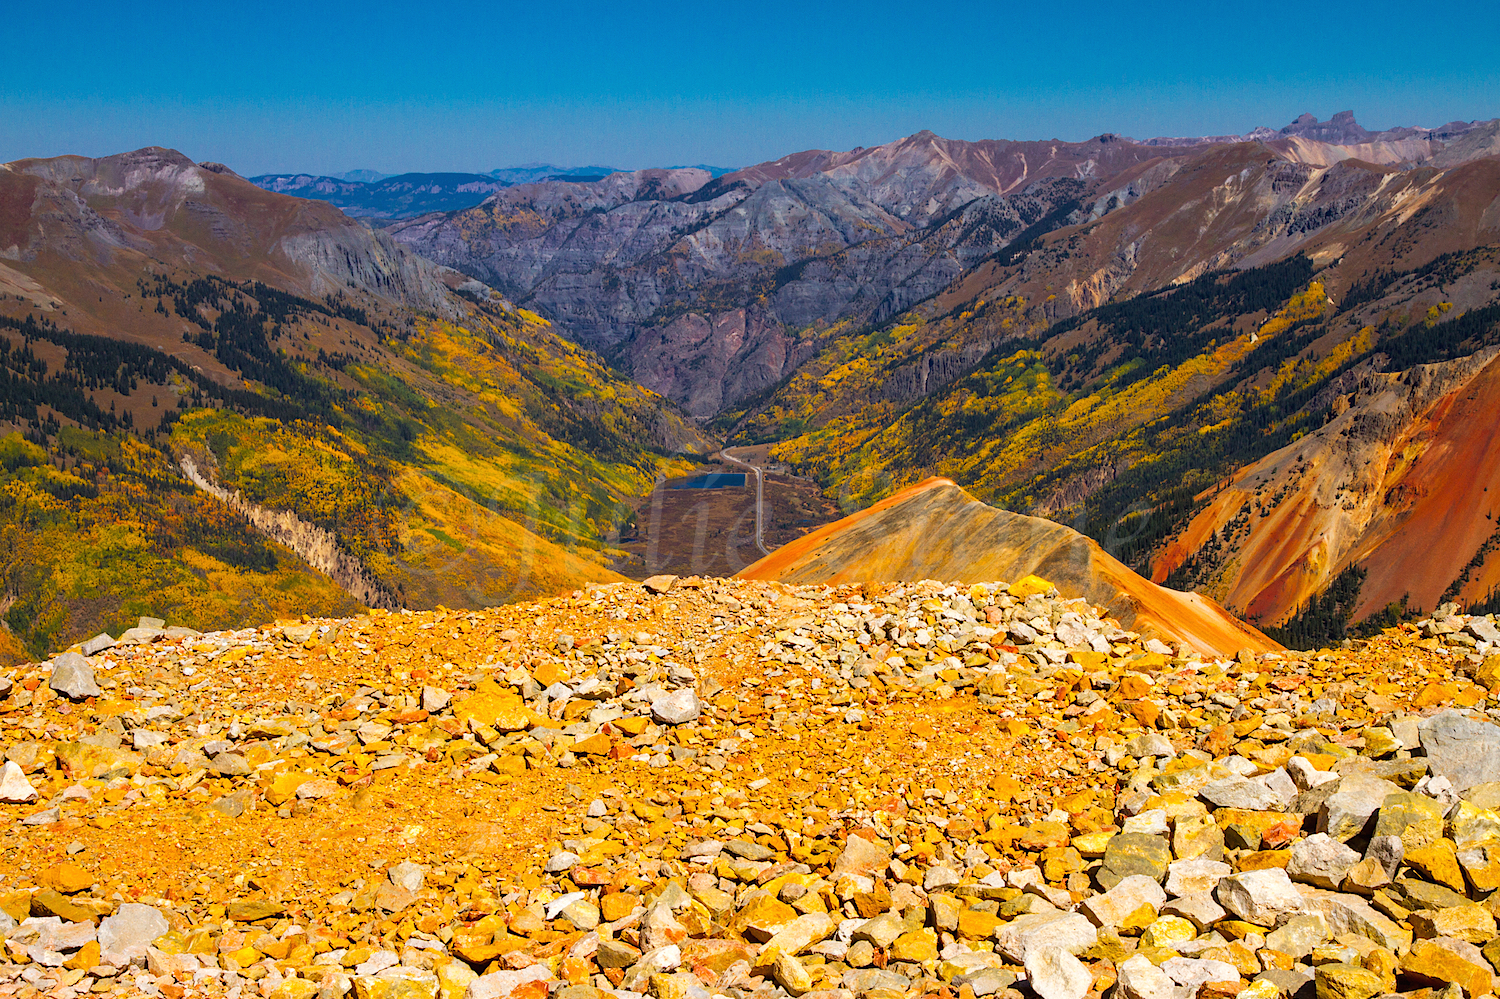 Red Mountain #3, Image #1411